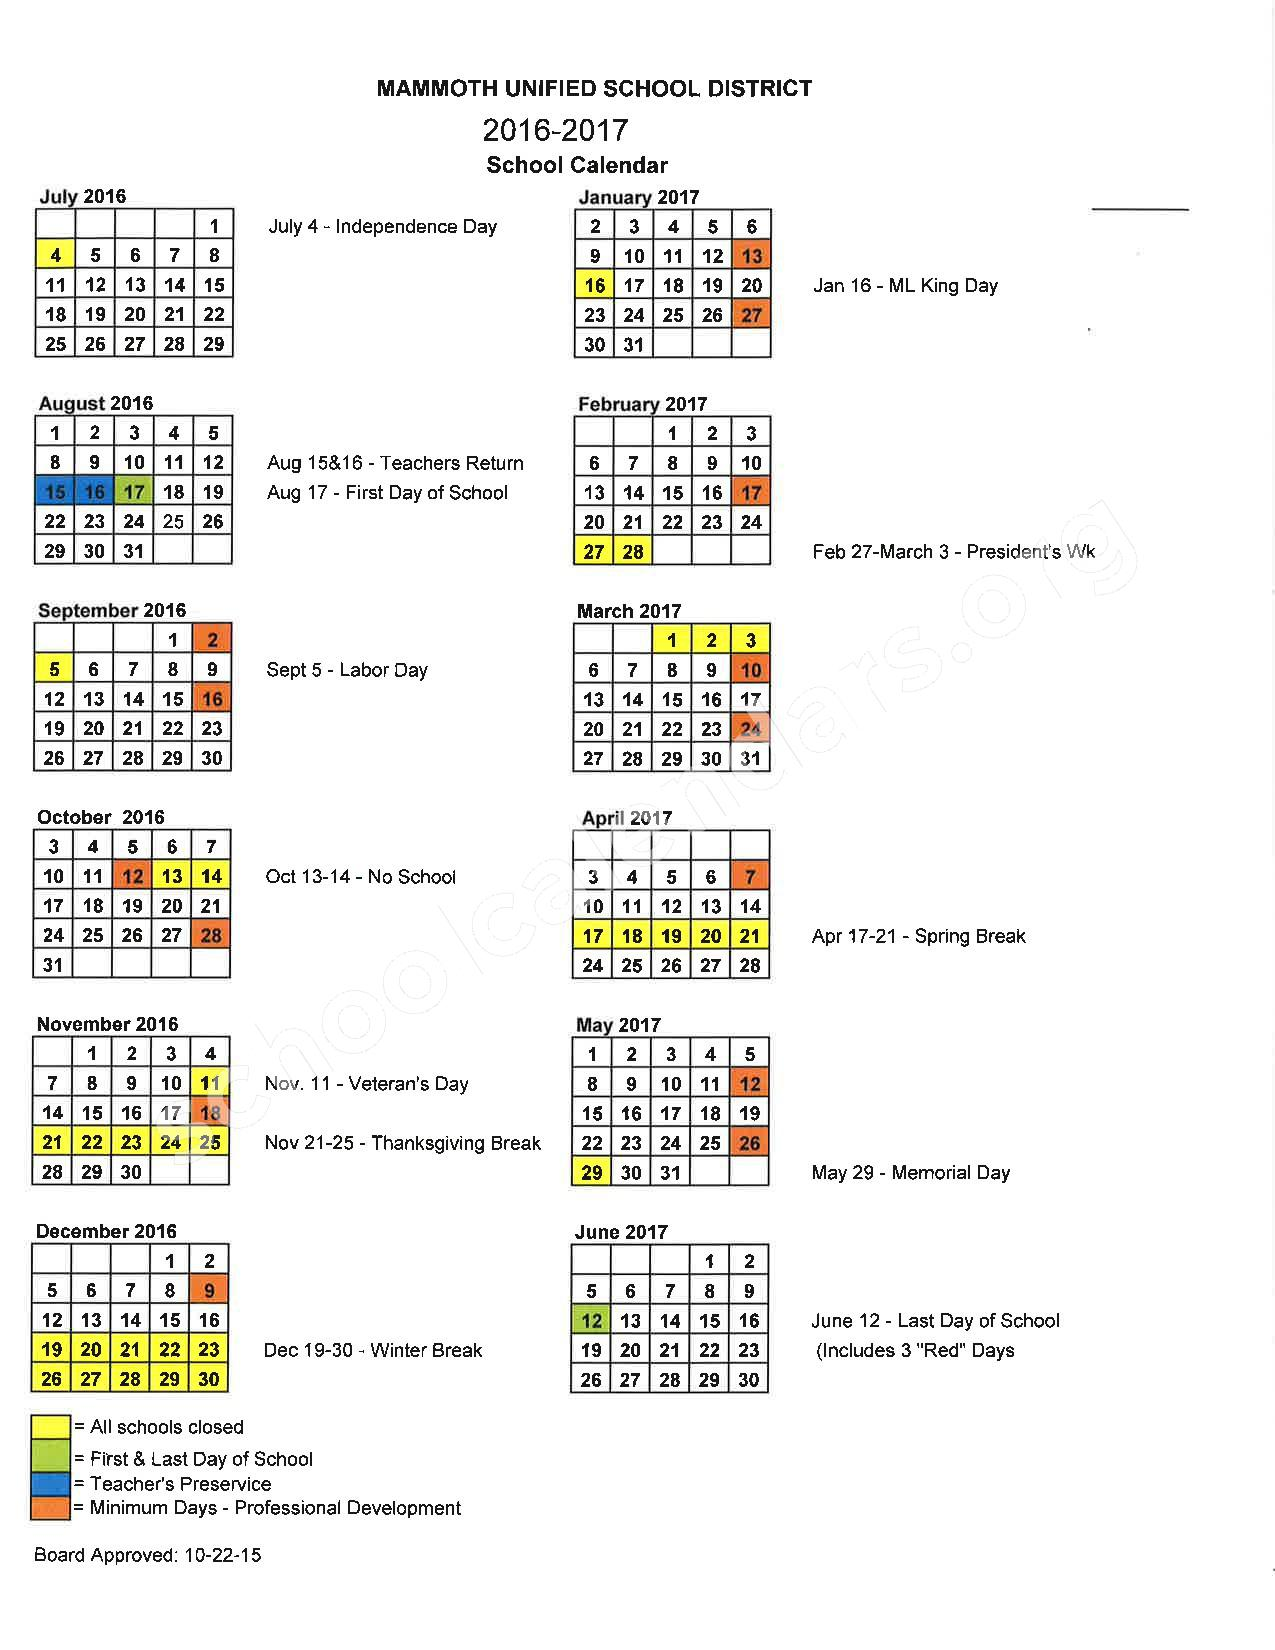 2016 - 2017 School Calendar – Mammoth Unified School District – page 1